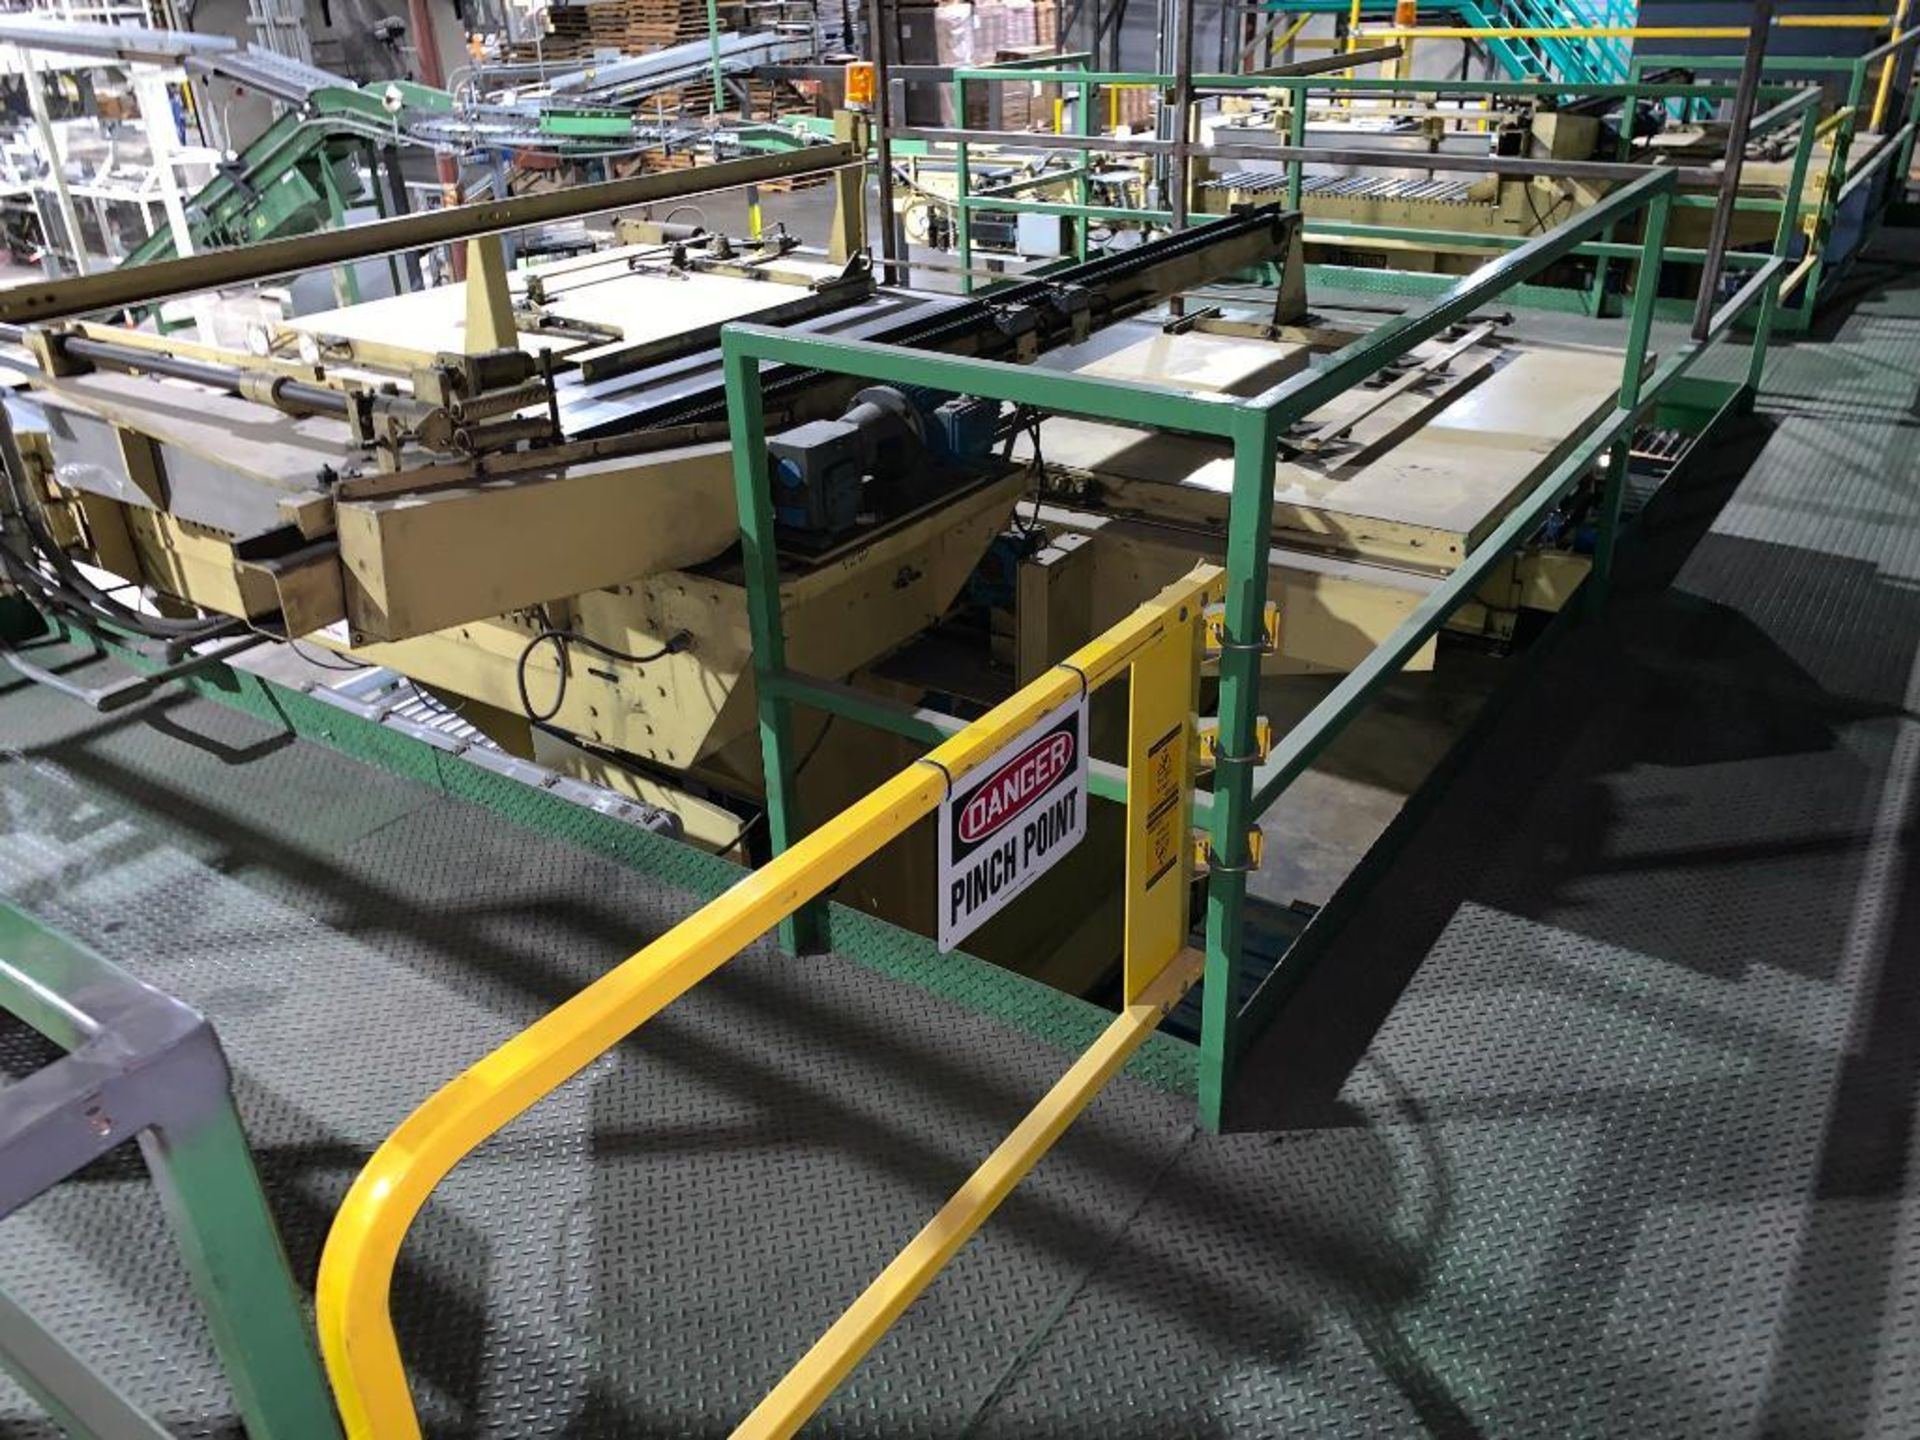 1992 Currie top to bottom palletizer, machine number LSP-5-1177 - Image 53 of 53